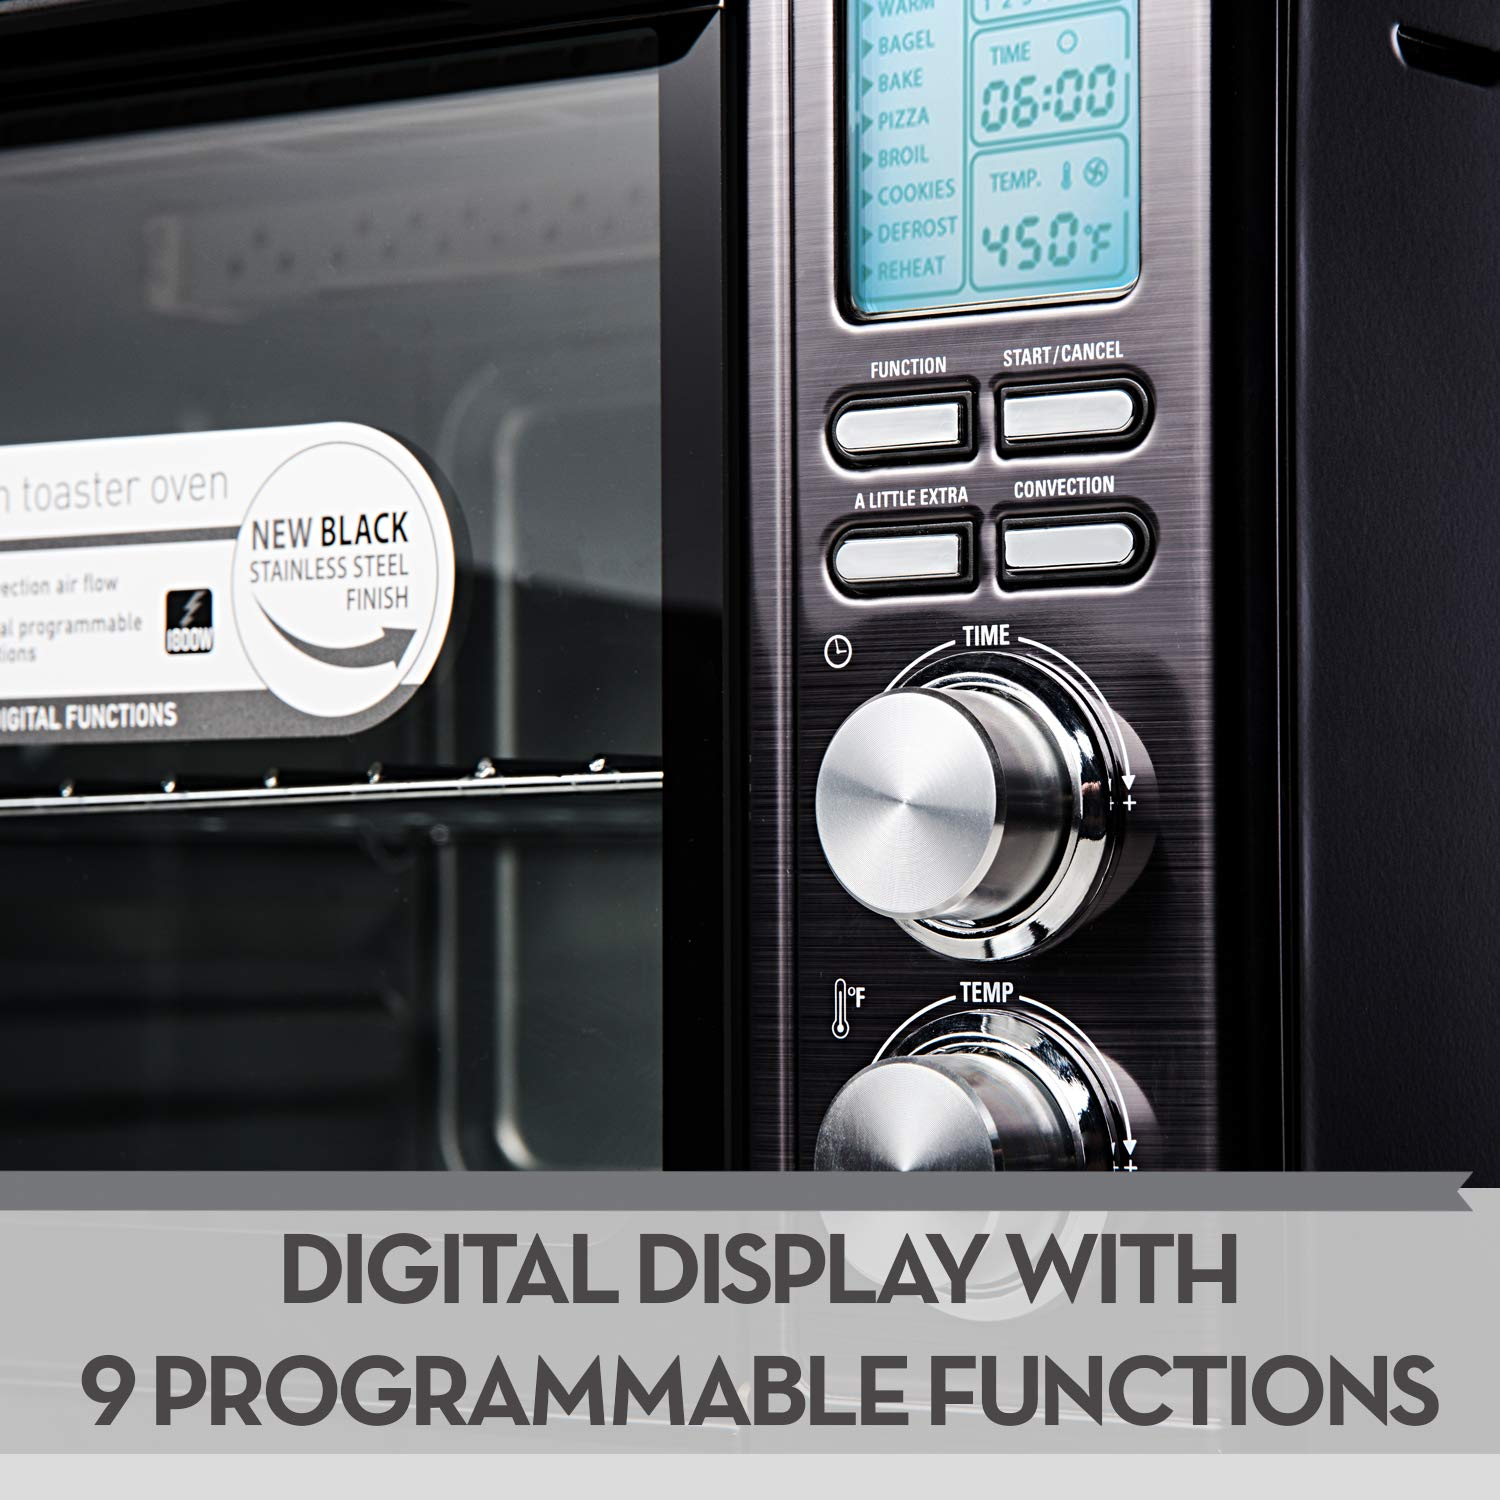 Bialetti (35047) 6-Slice Convection Toaster Oven, Black Stainless Steel by Bialetti (Image #2)